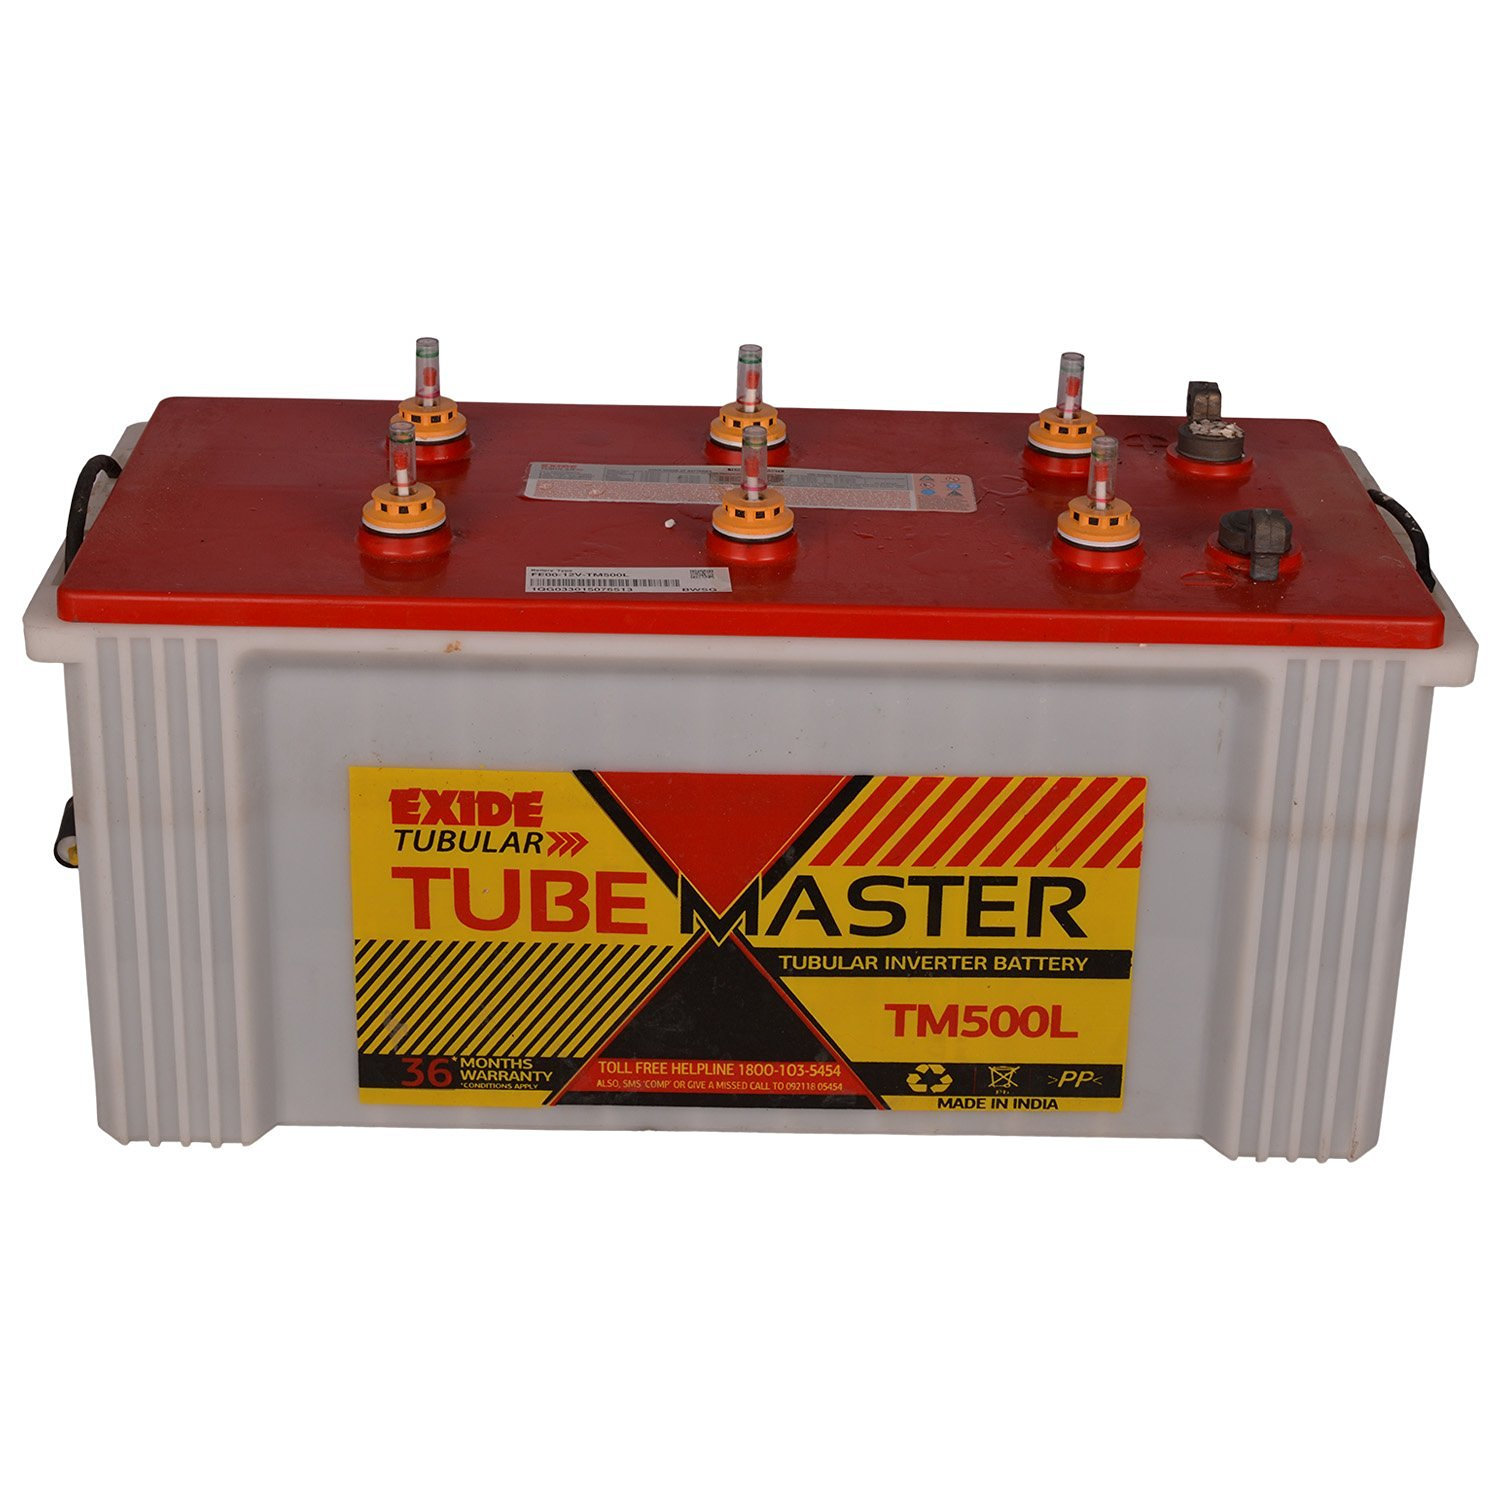 Exide 150Ah Tube Master Tm500l Plus Tubular Inverter Battery